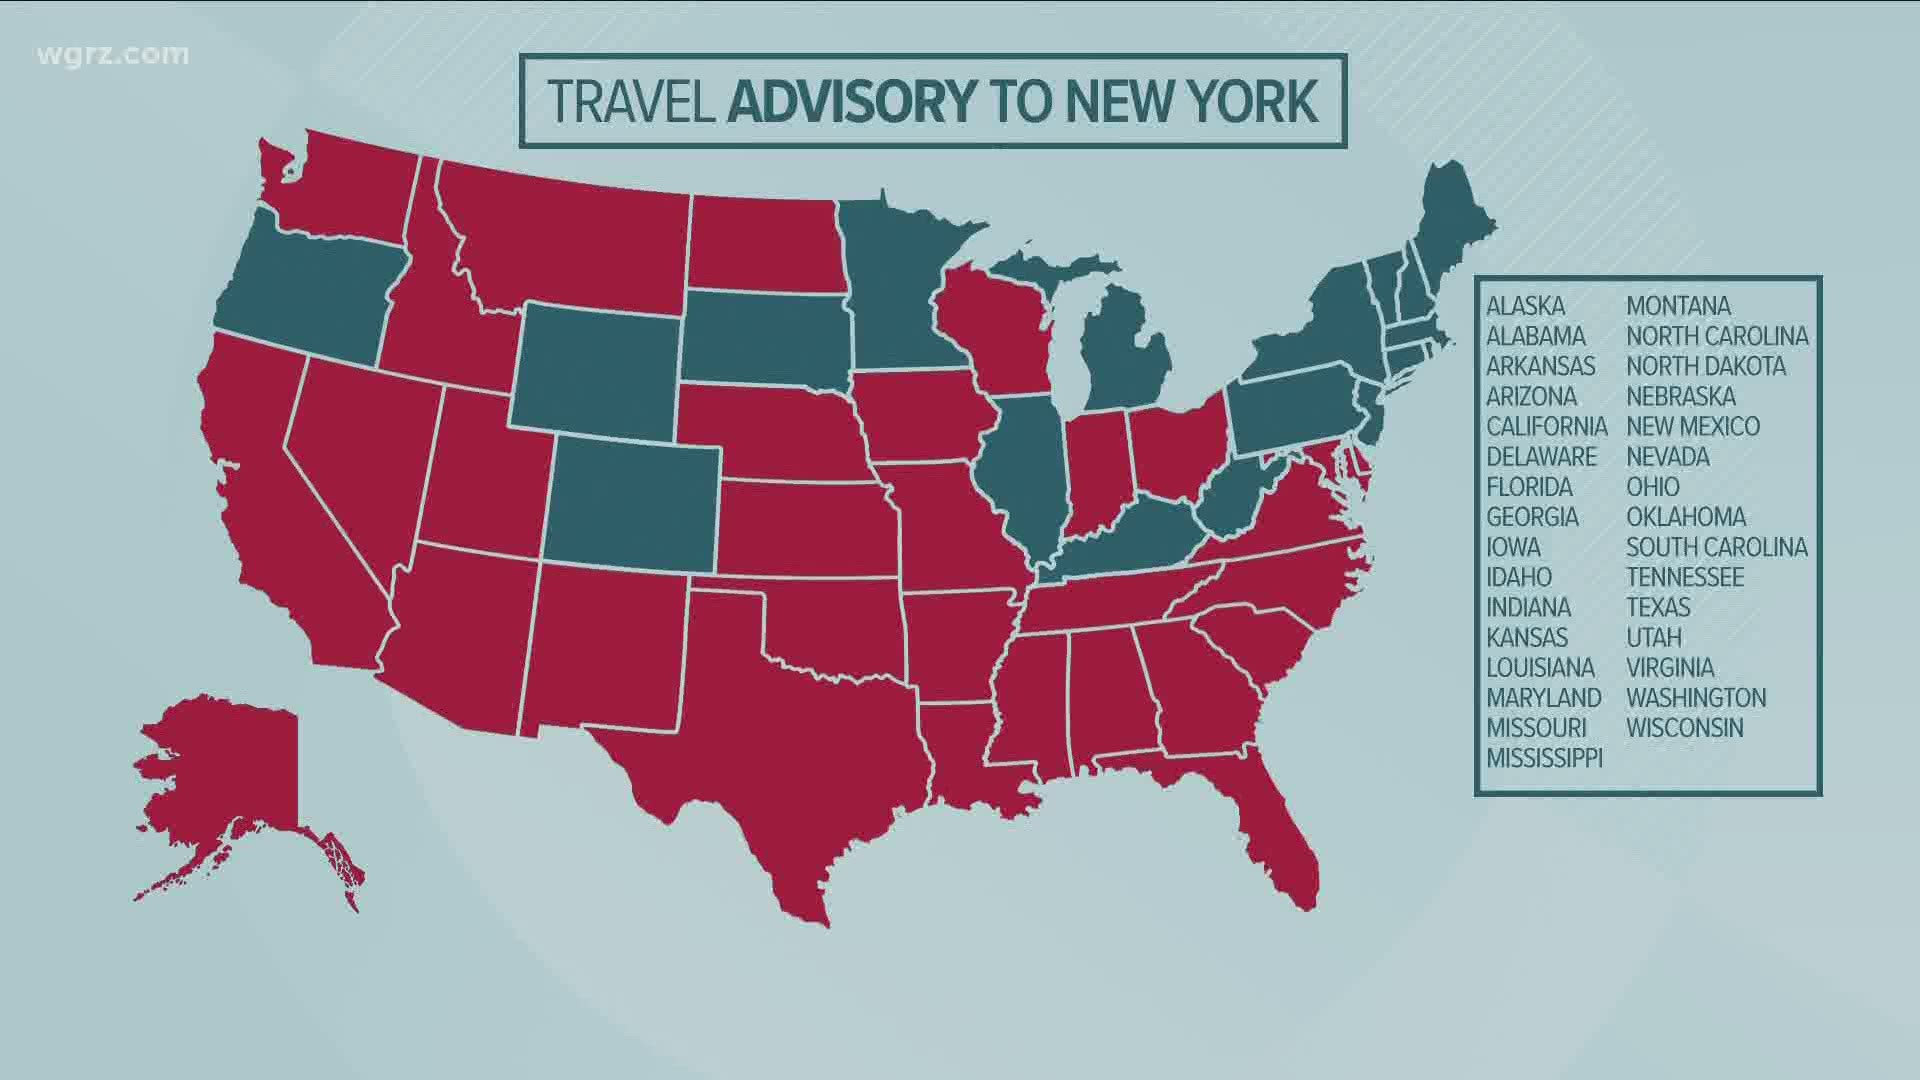 More States Added To Nys Travel Advisory